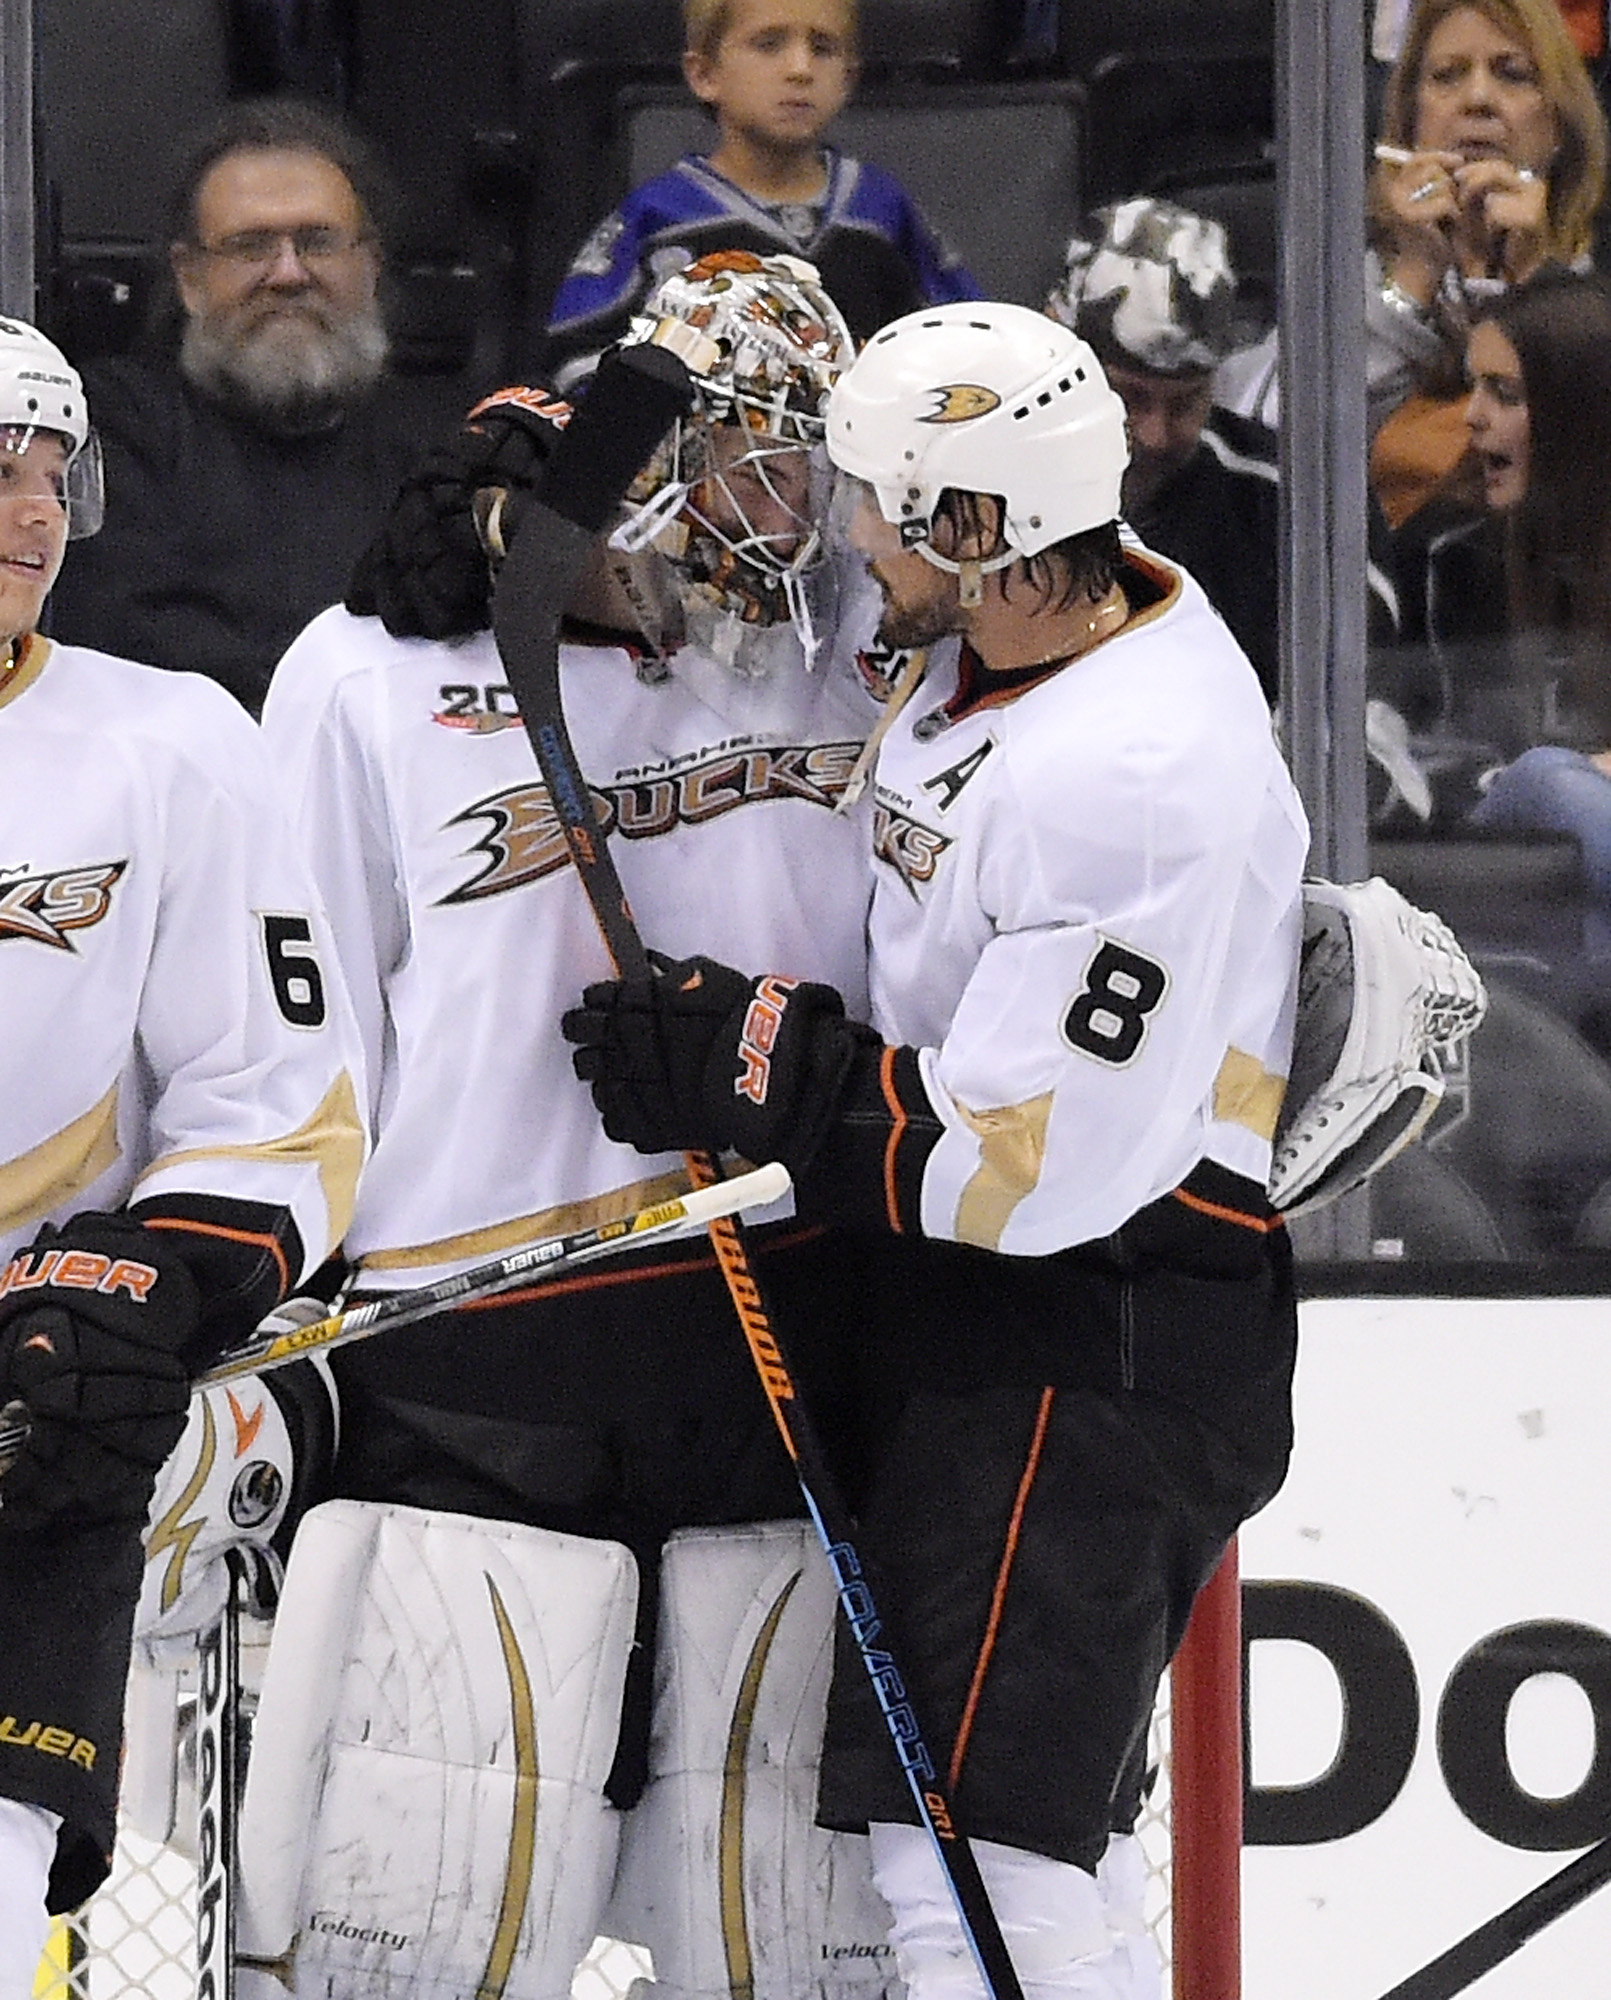 Anaheim Ducks right wing Teemu Selanne, of Finland, congratulates Anaheim Ducks goalie John Gibson after Game 4 of an NHL hockey second-round Stanley Cup playoff series, Saturday, May 10, 2014, in Los Angeles. The Duck won 2-0